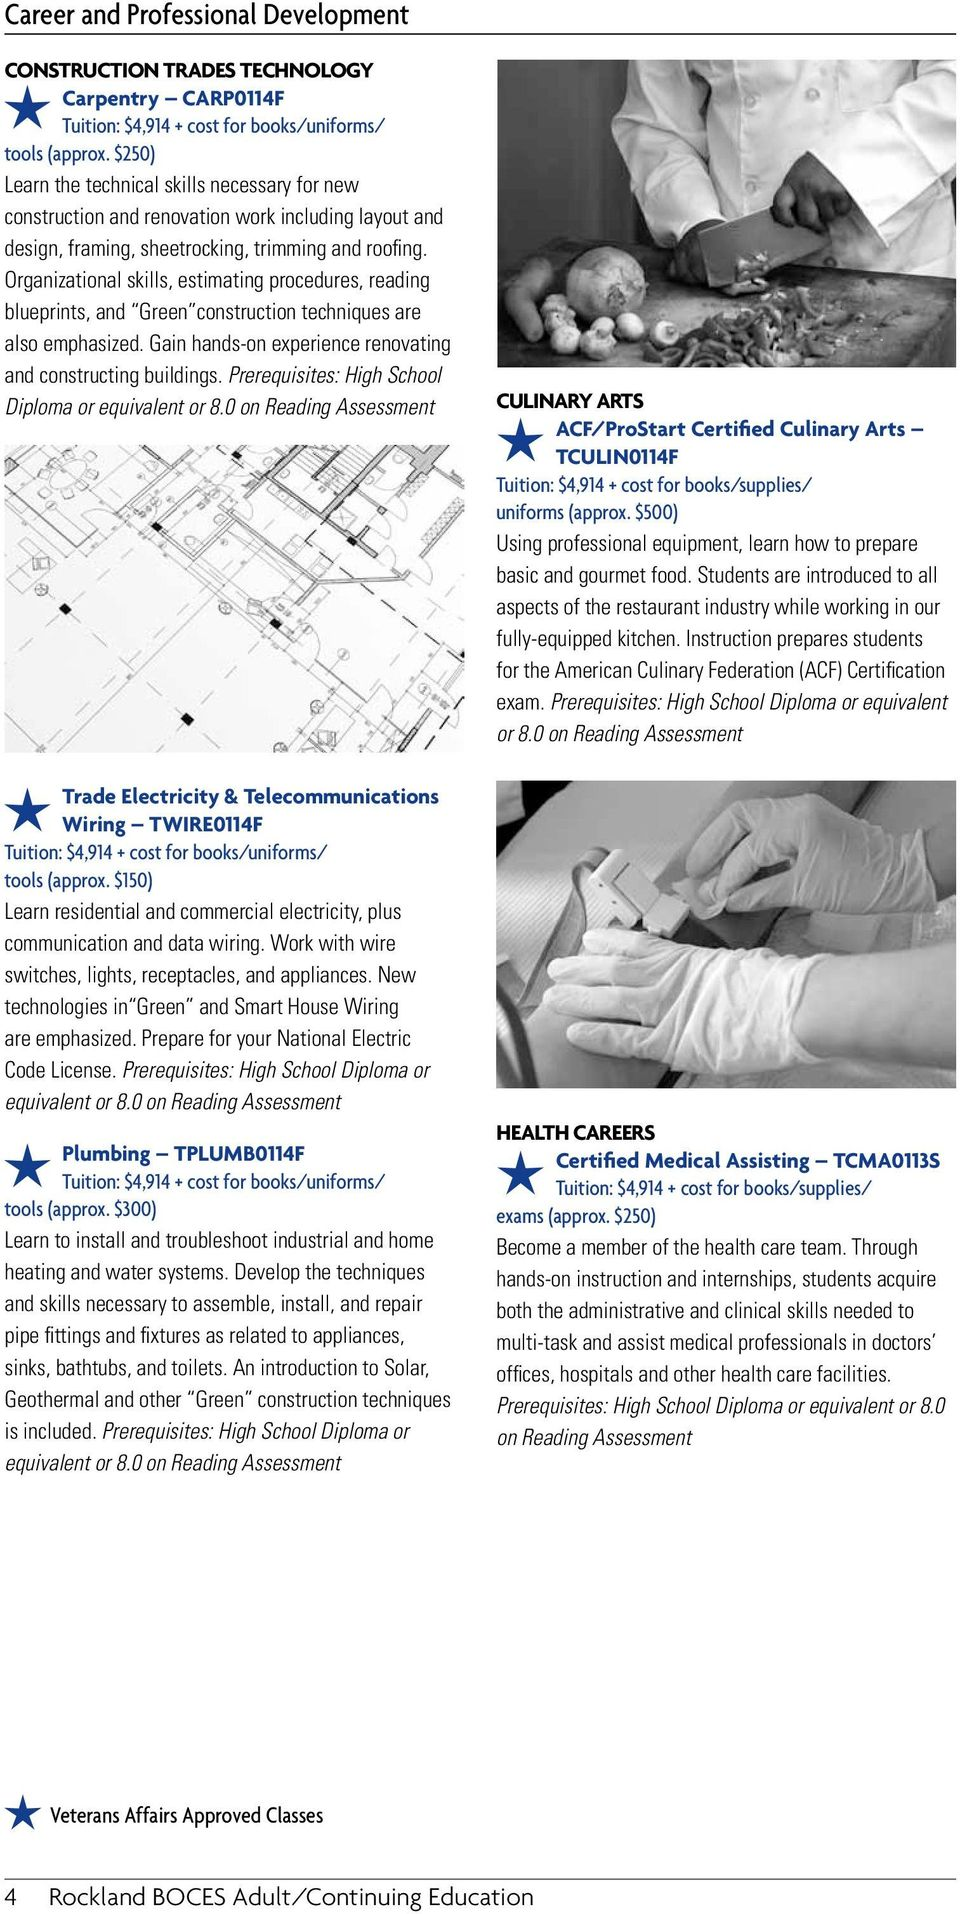 Rooted In The Community Adult Education Courses Fall Winter 845 Pdf House Wiring Techniques Organizational Skills Estimating Procedures Reading Blueprints And Green Construction Are Also Emphasized